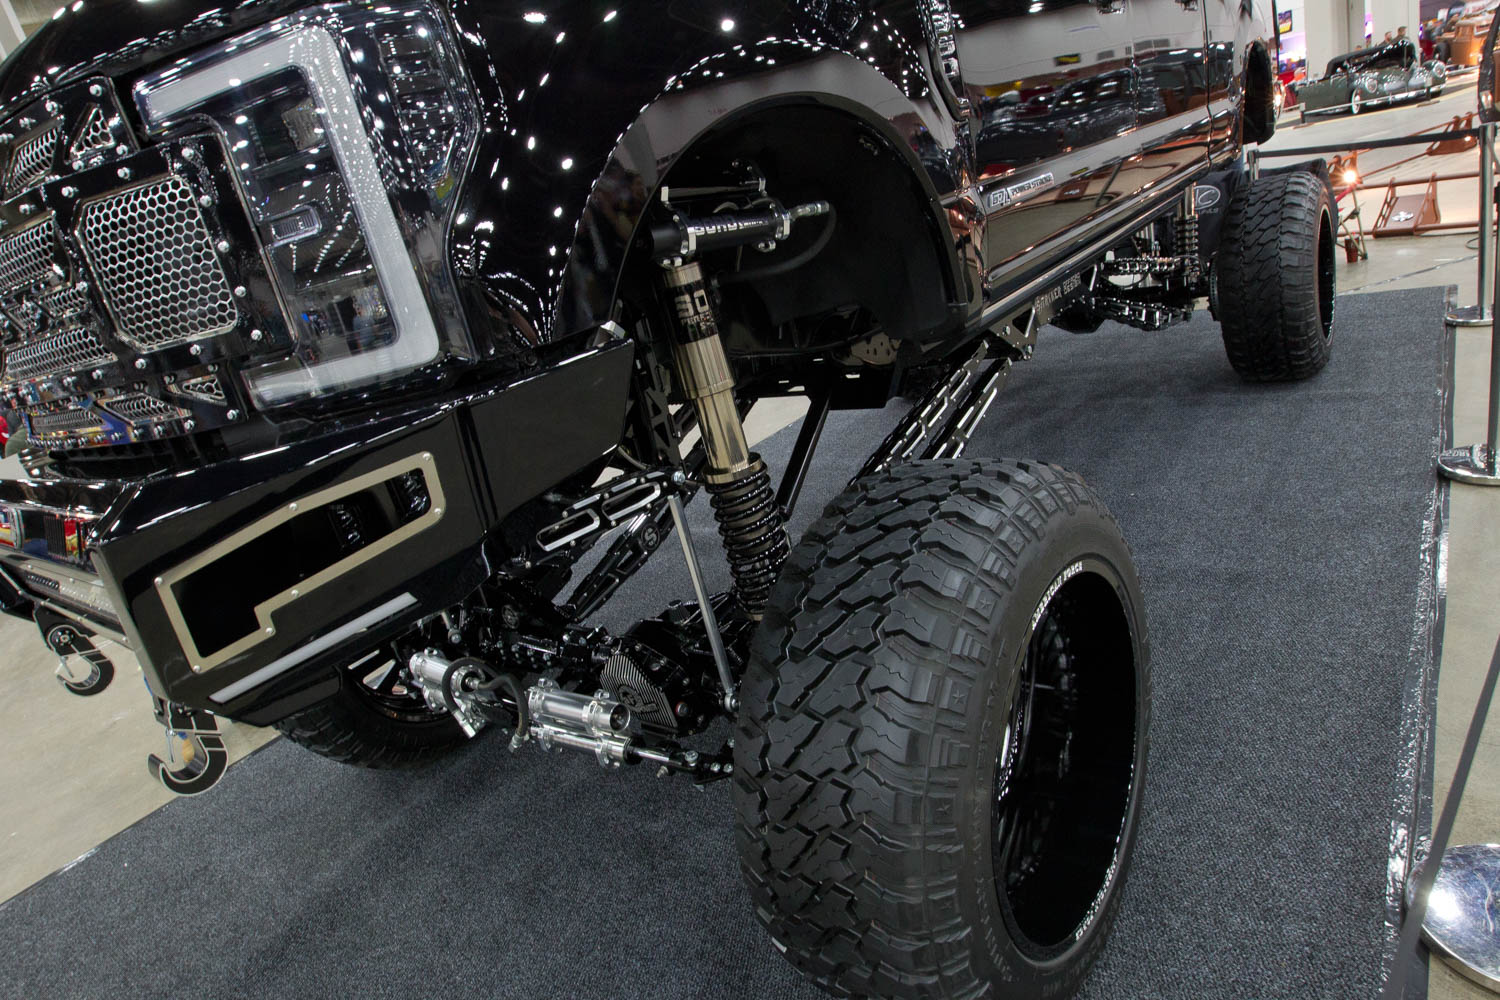 lifted truck suspension at Autorama 2019